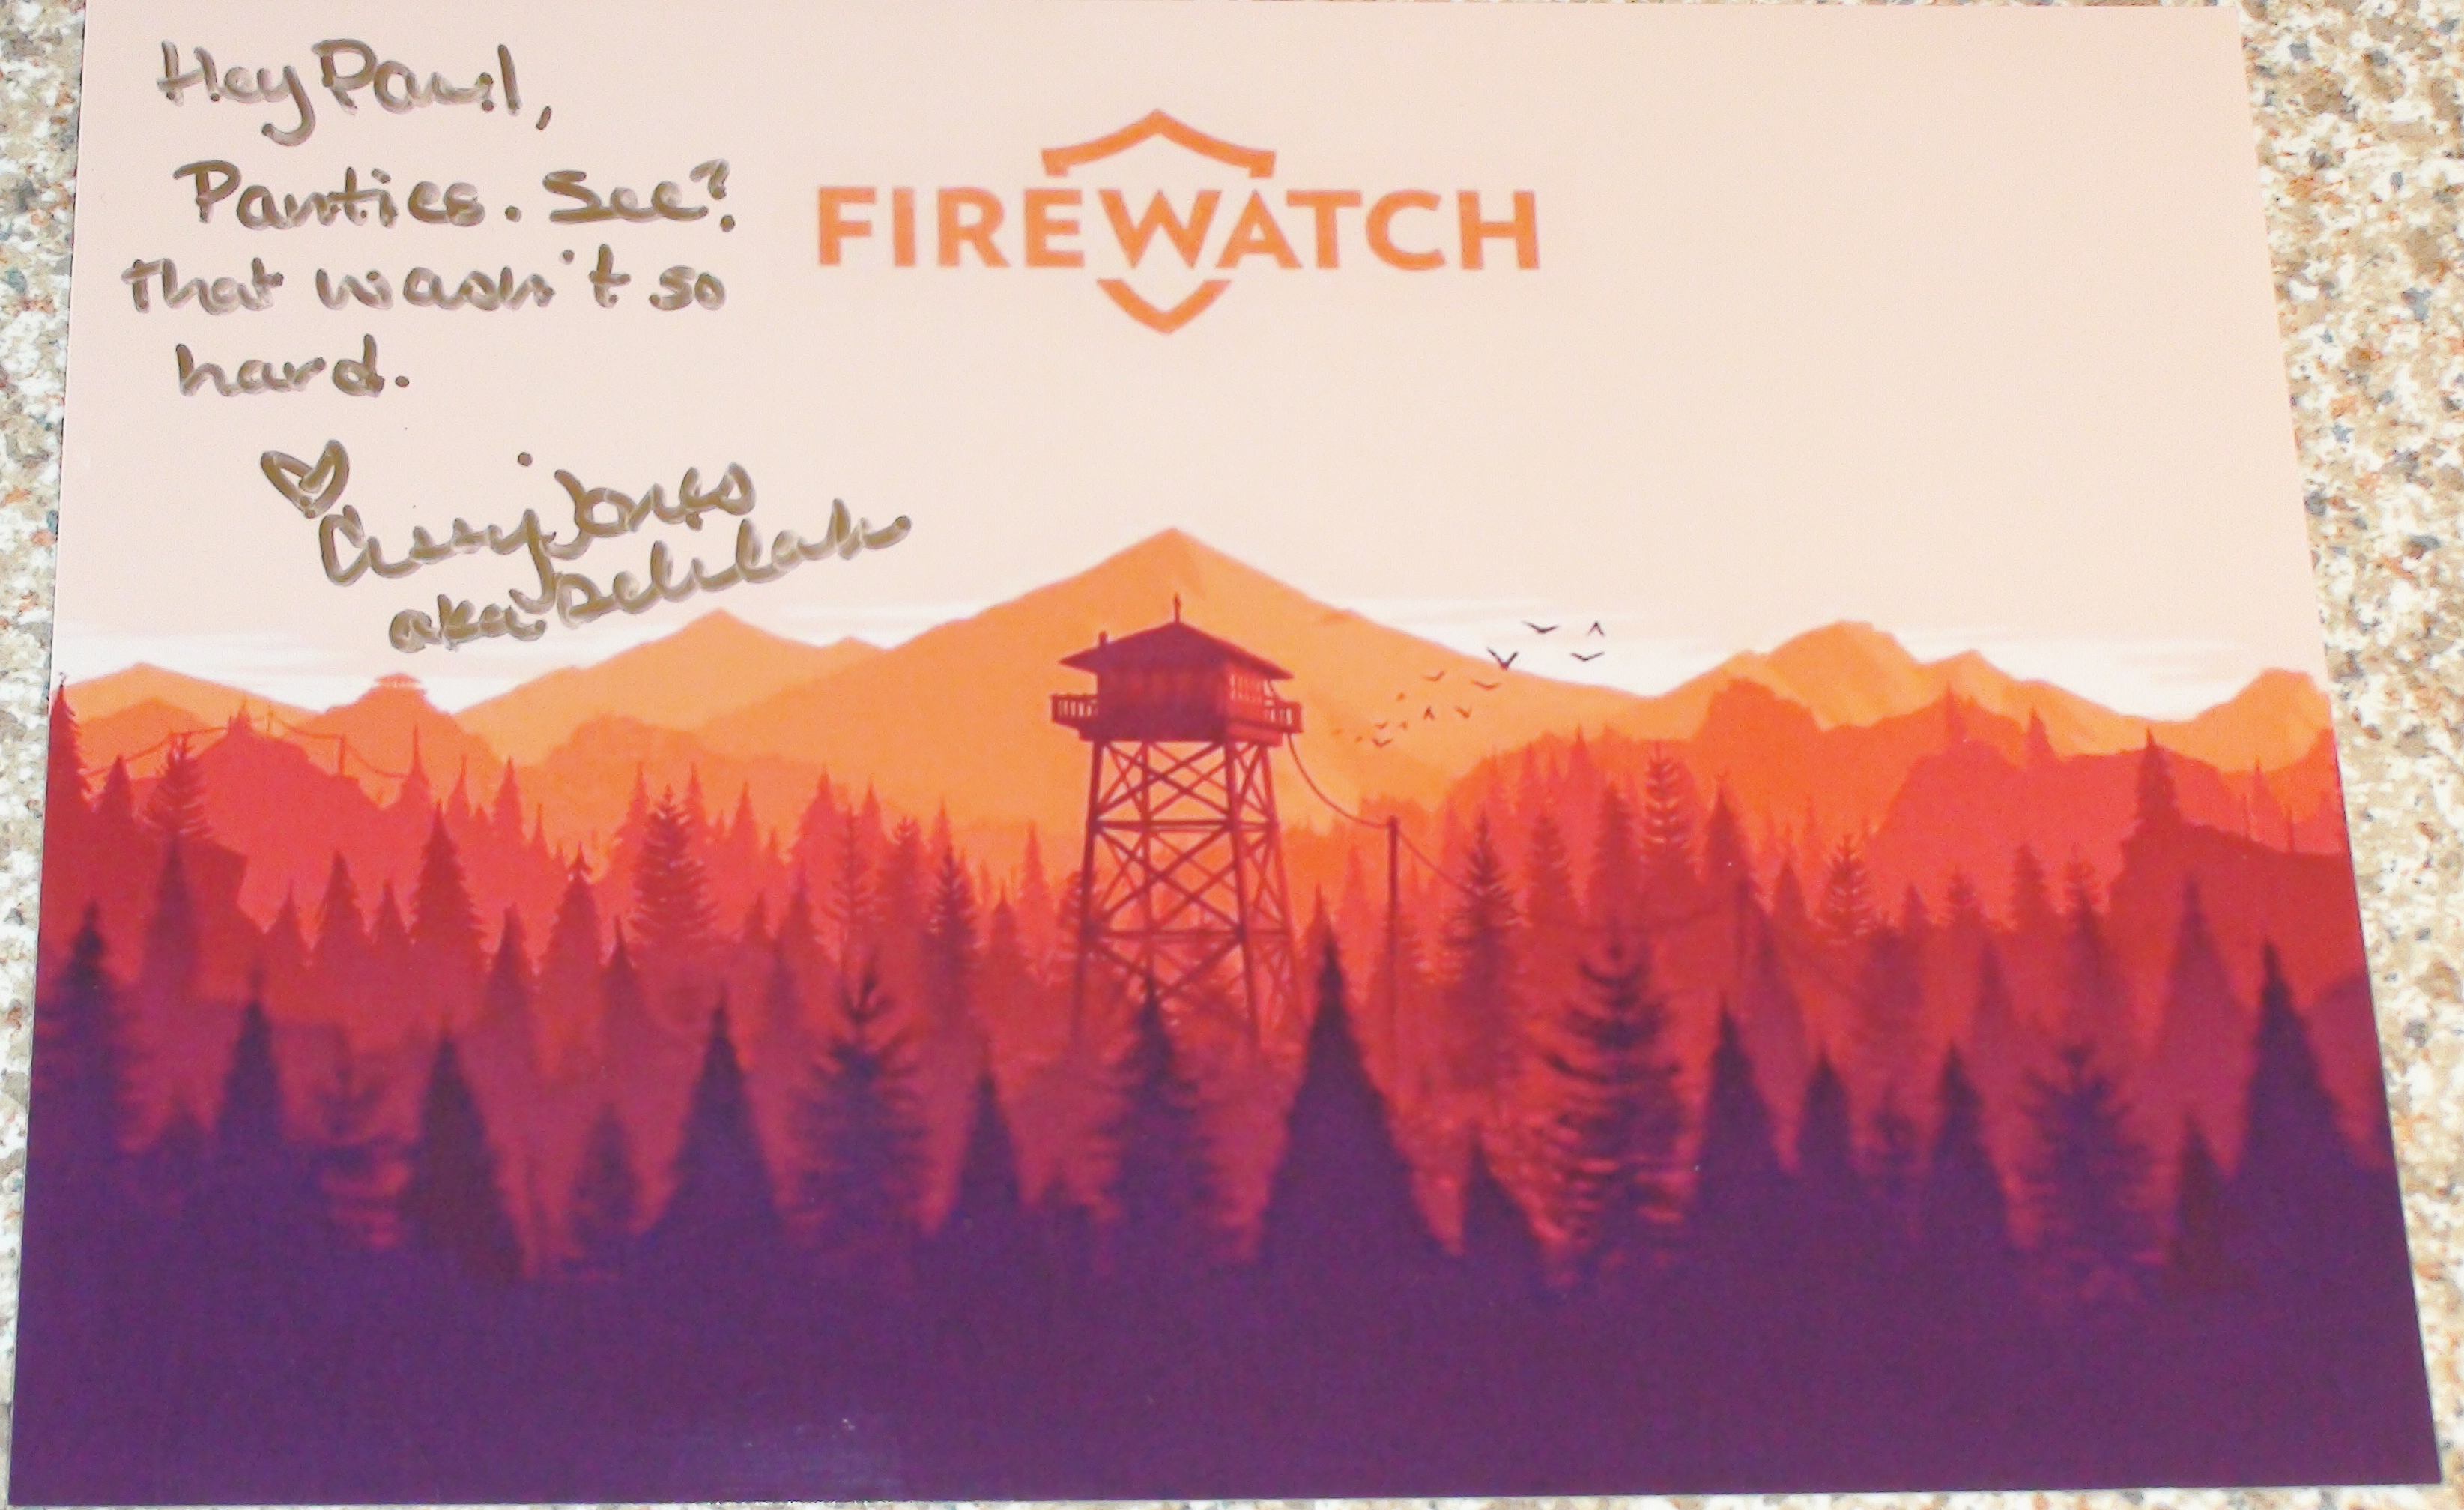 Firewatch - Cissy Jones